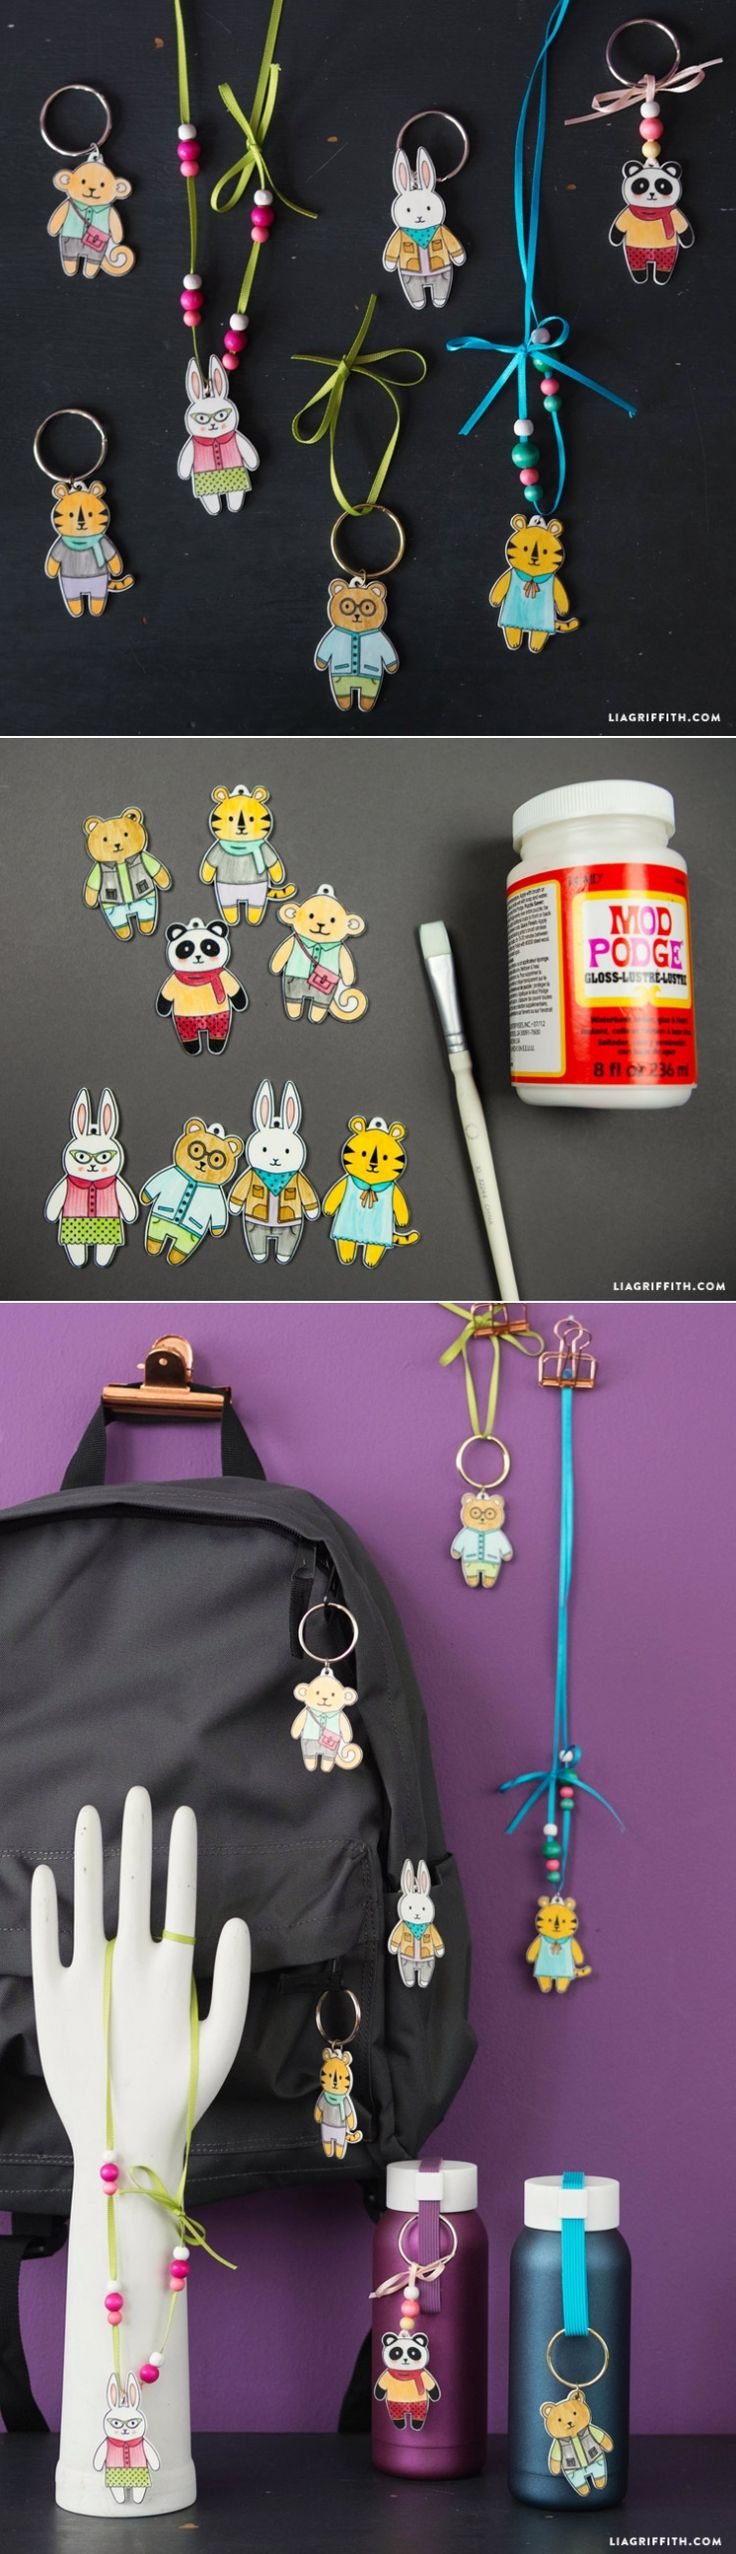 Shrink Film Charms for Kids   What a fun kids' craft idea!